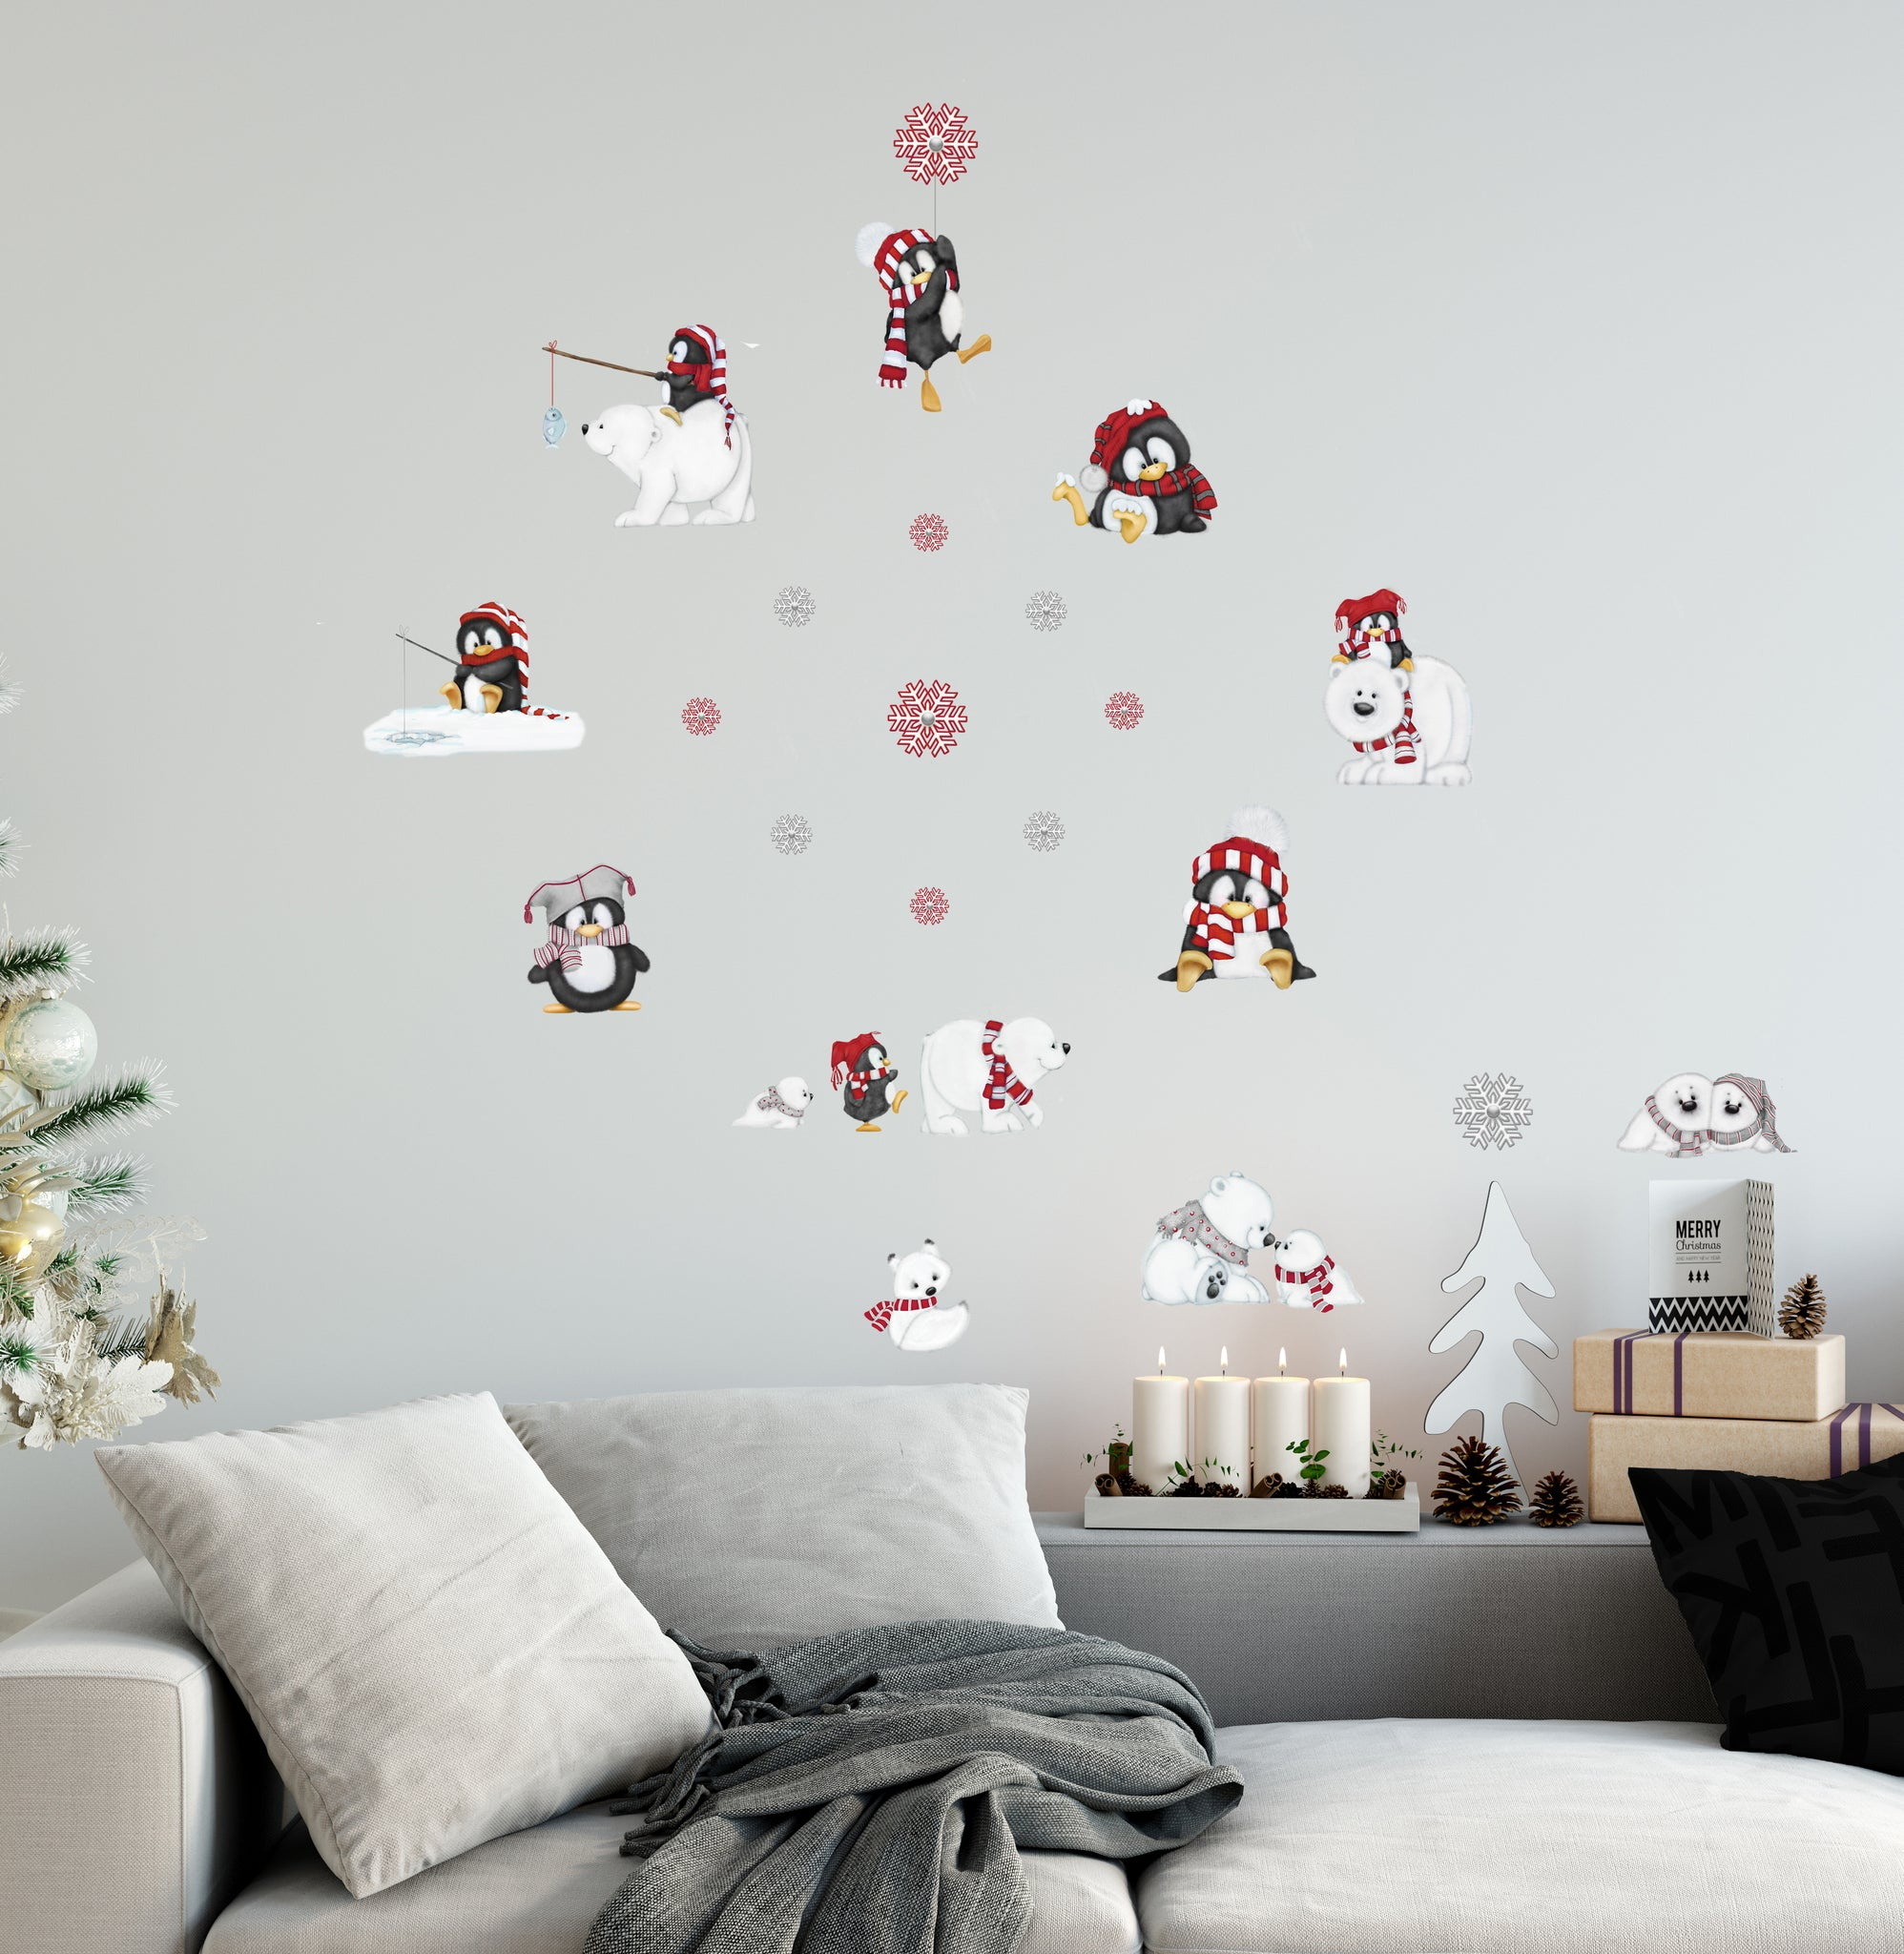 Arctic Antics Decal Set